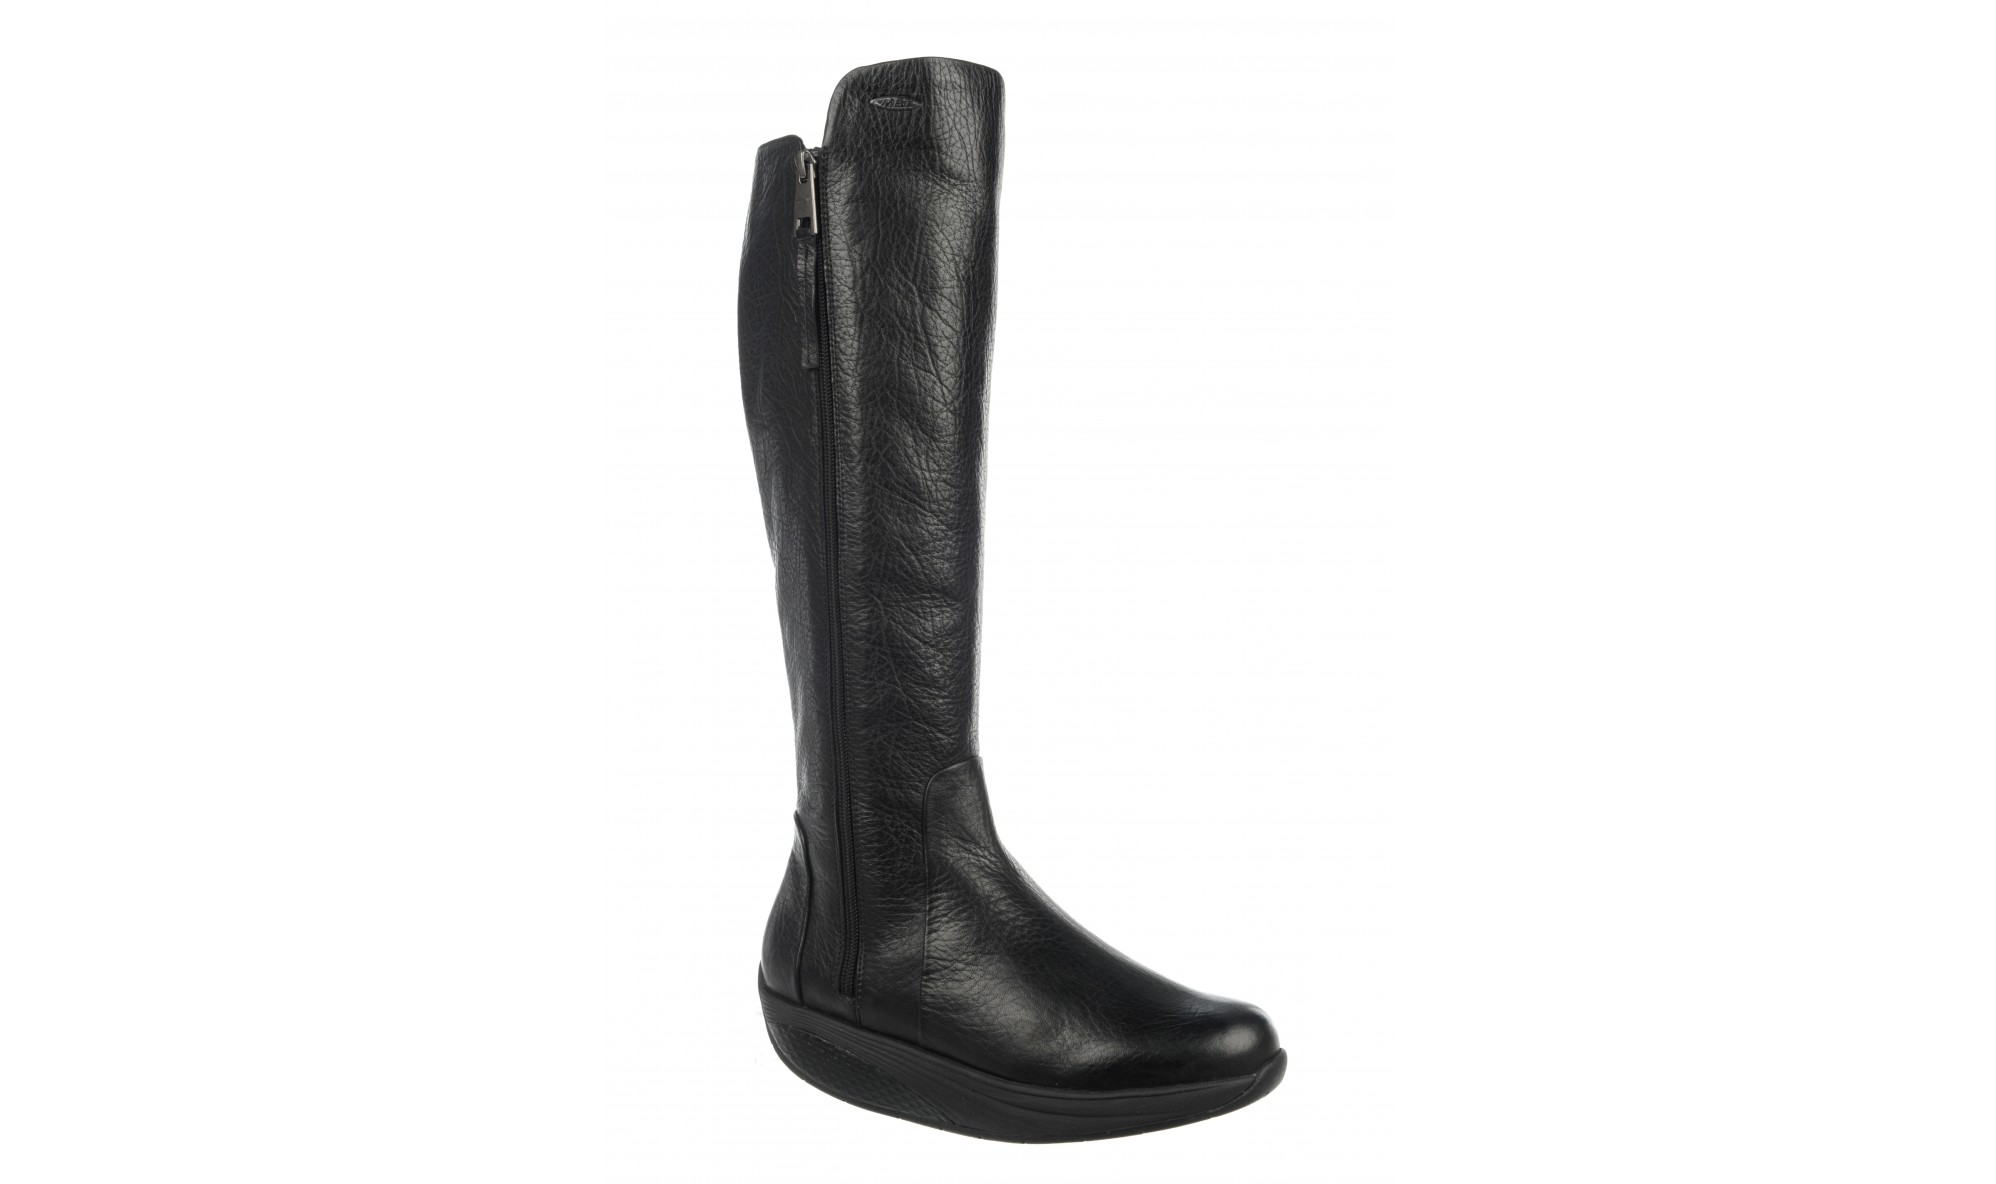 MBT Women's Malika High Boot Black